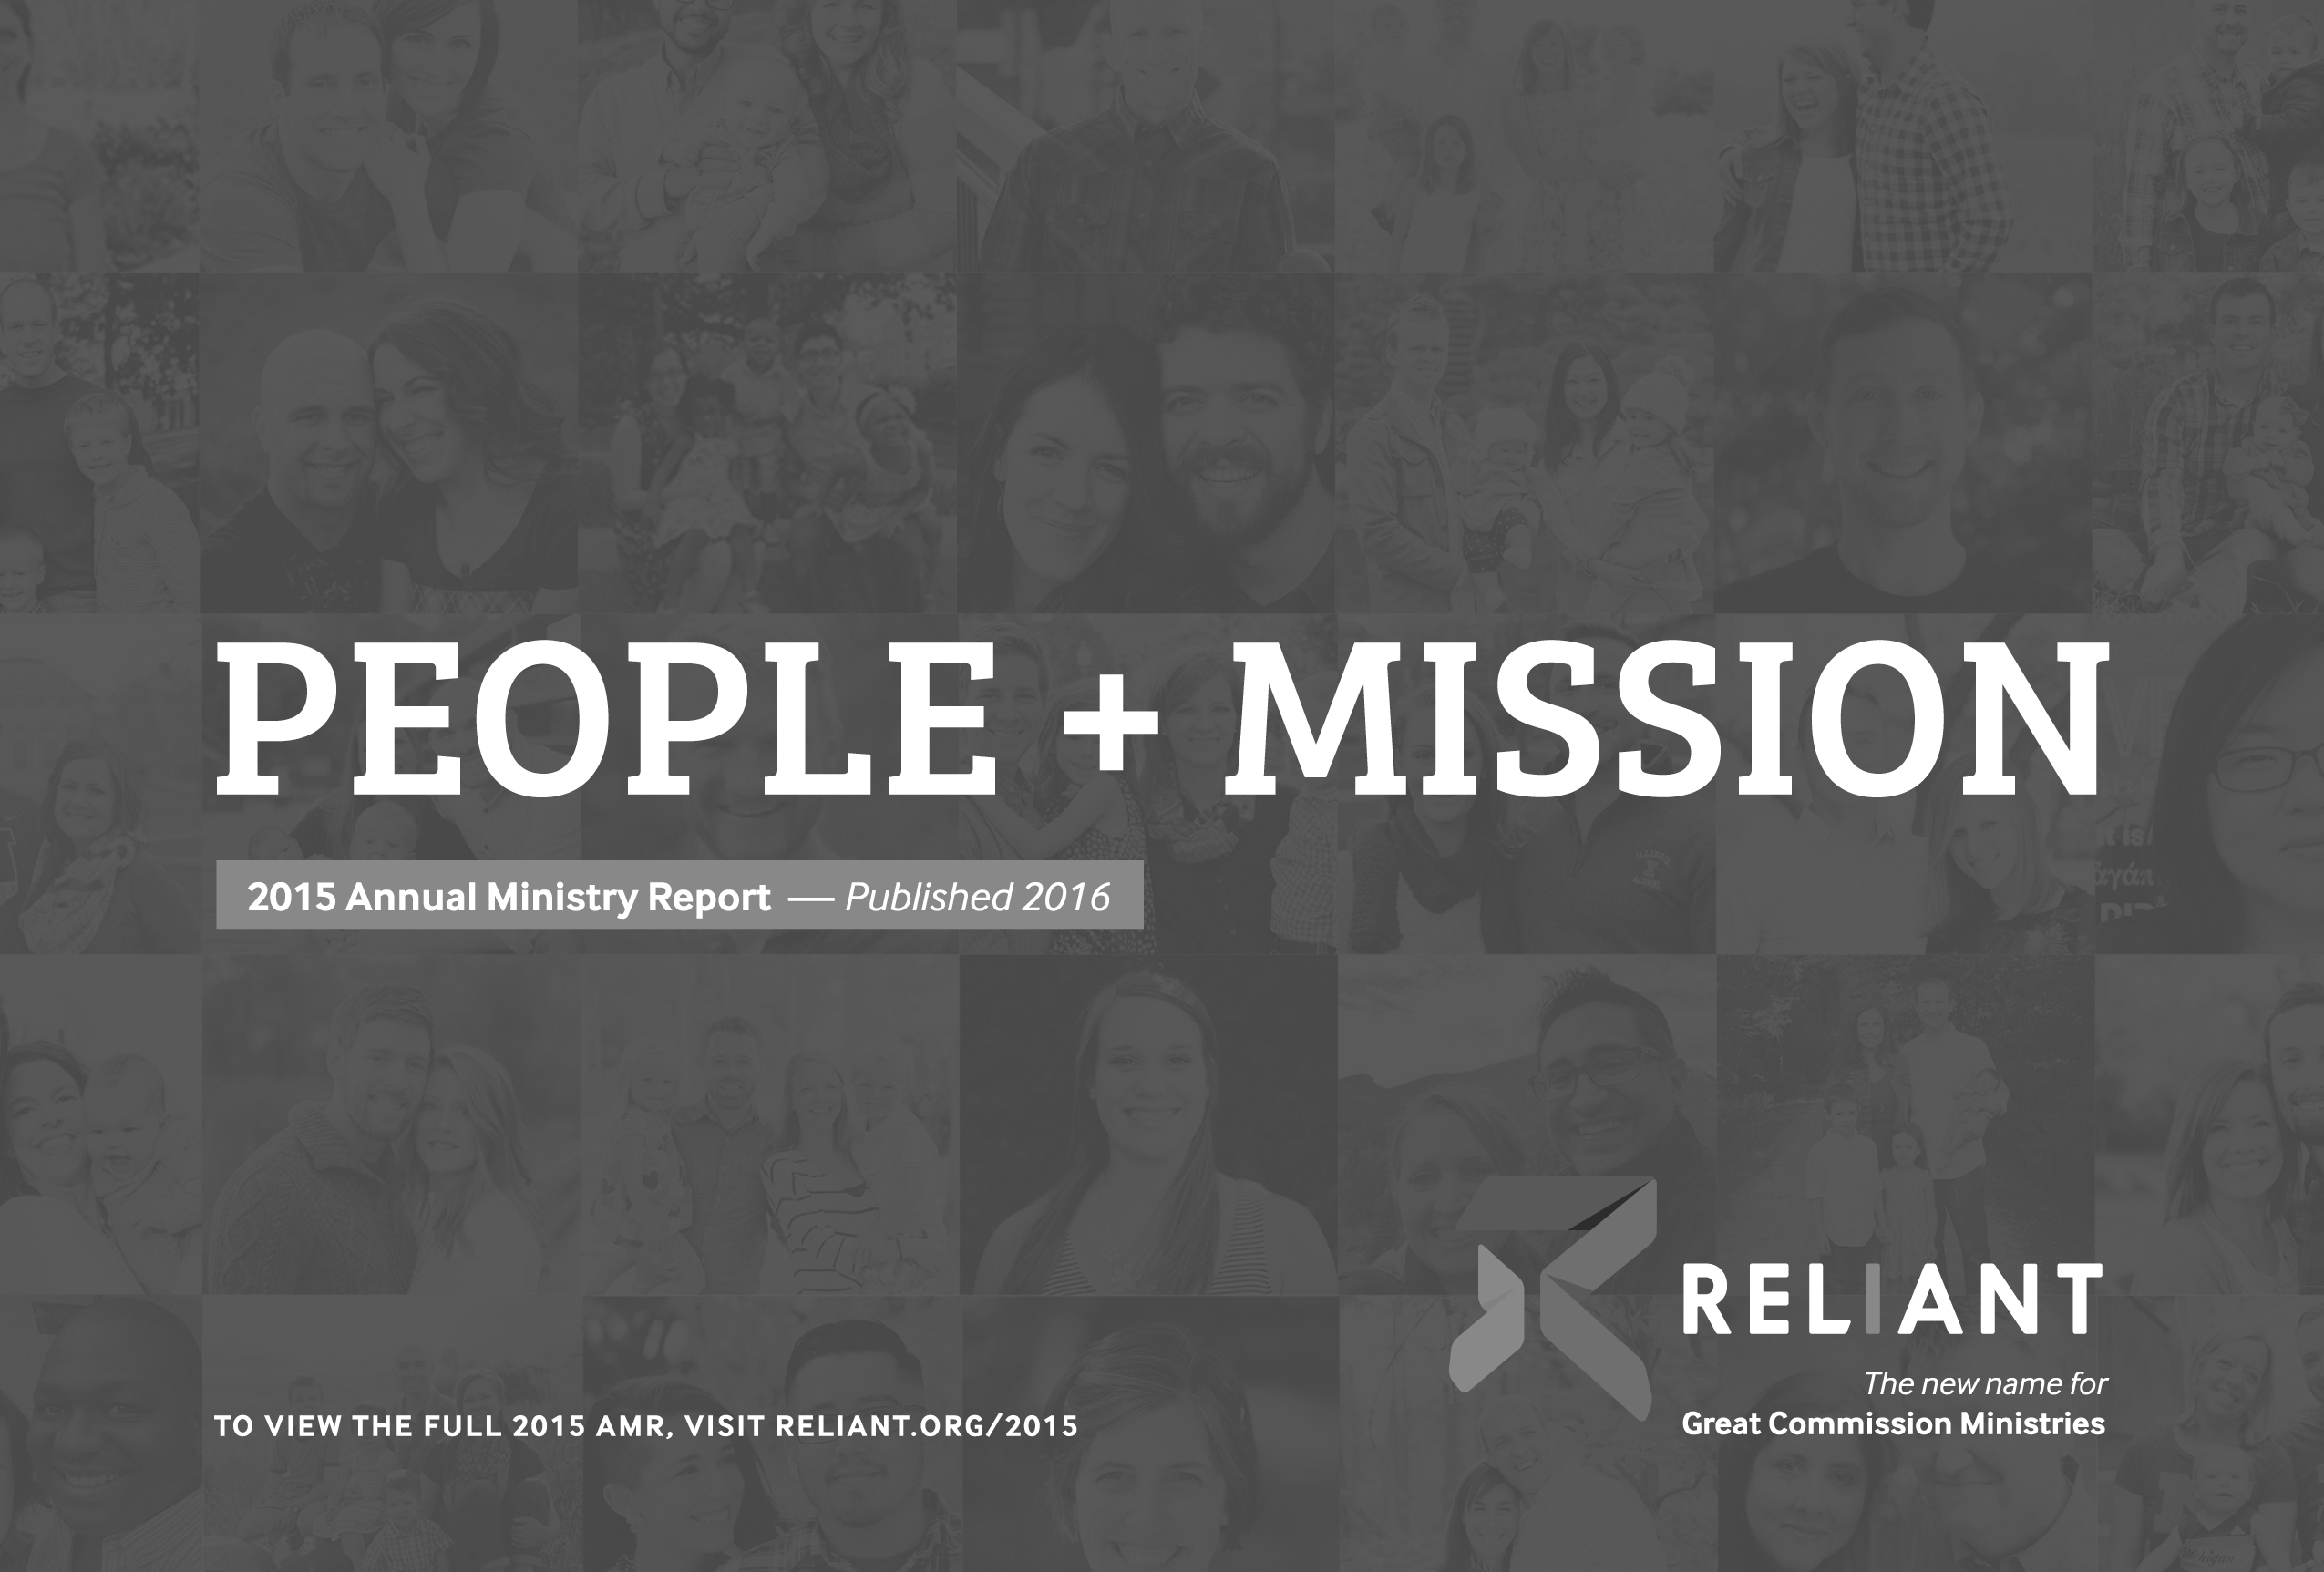 2015 Annual Ministry Report